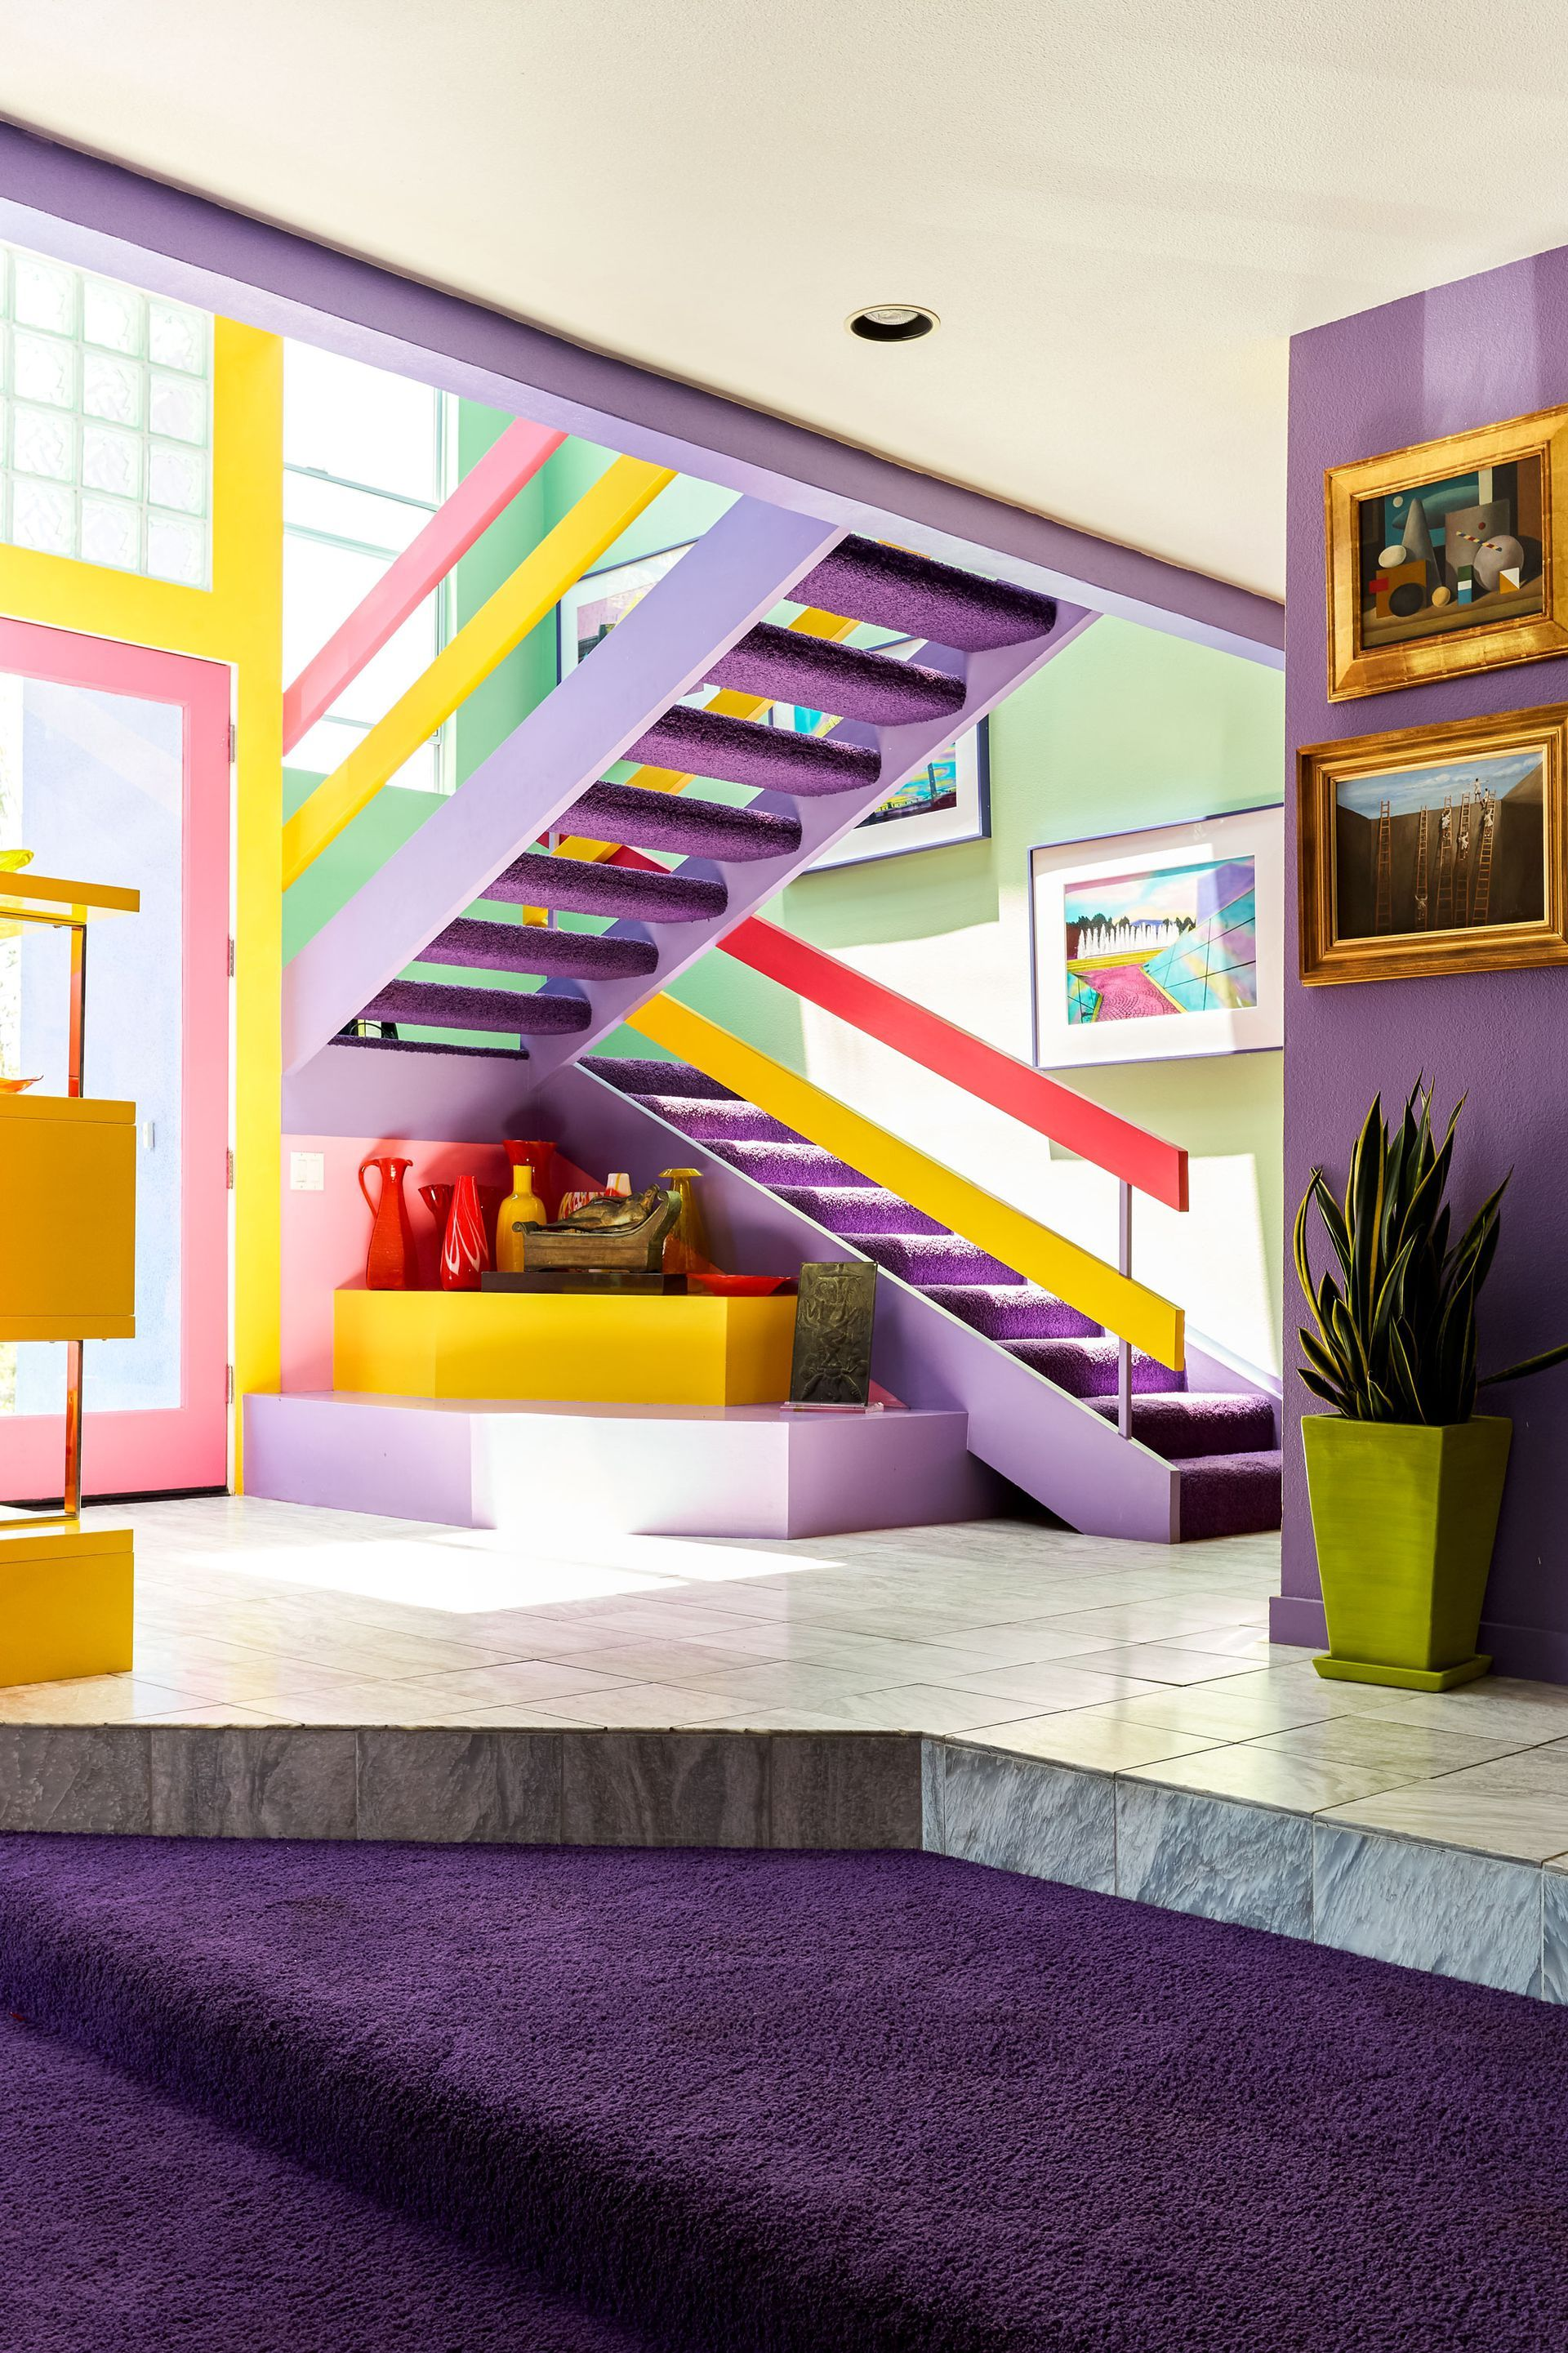 Artist S Home In Santa Barbara Is A Color Lover S Dream With Images Italian Furniture Modern House Tours Hallway Designs